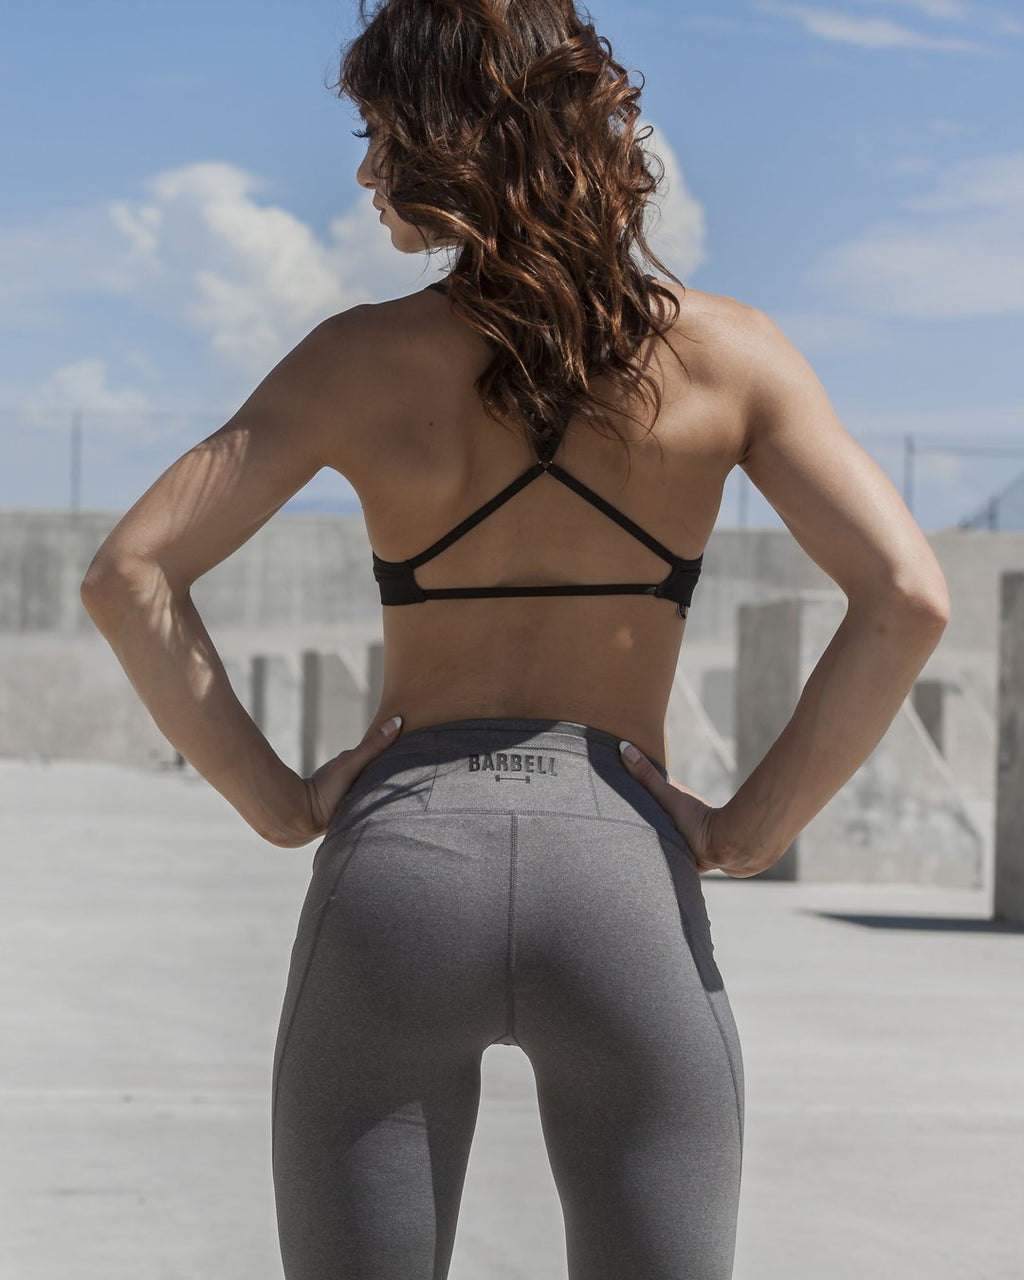 BARBELL APPAREL ADORE POCKET LEGGINGS - LIGHT GREY